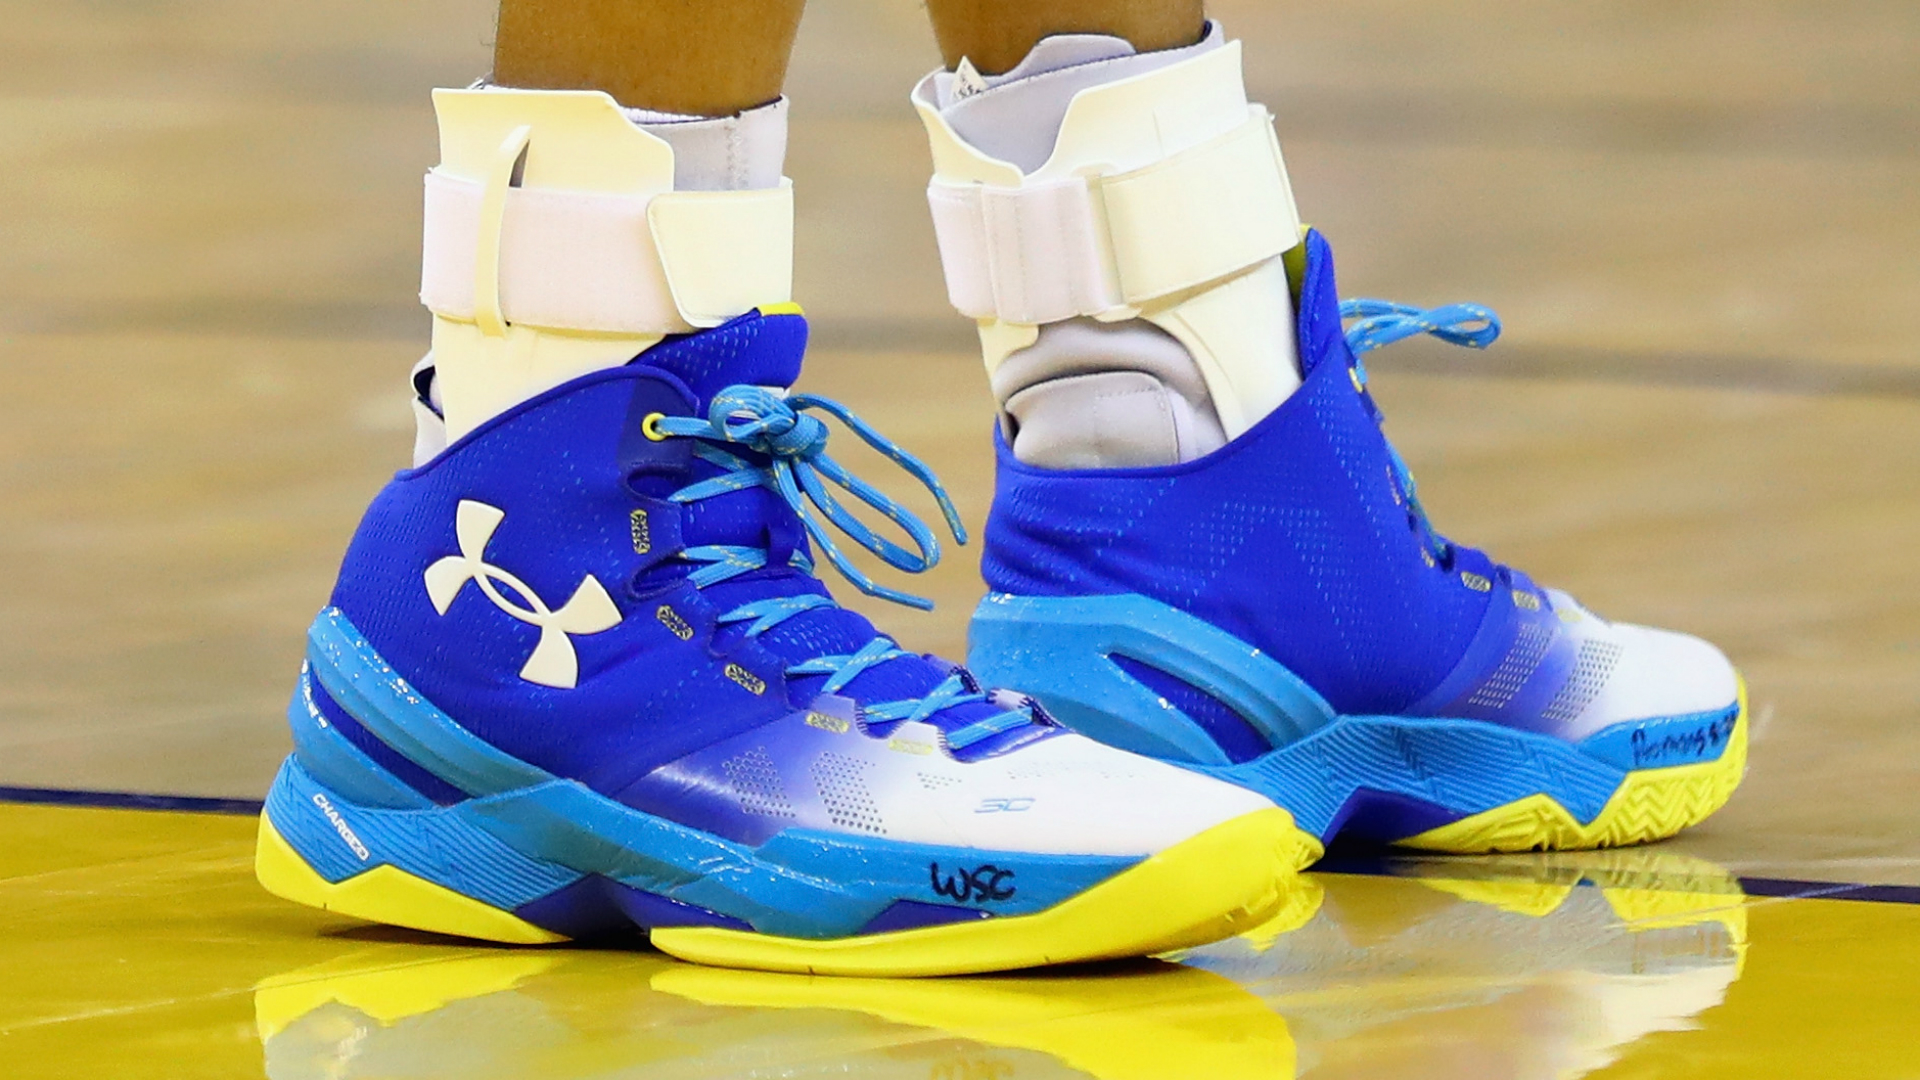 ca93777c Stephen Curry shoe sales fall hard, along with Under Armour stock .